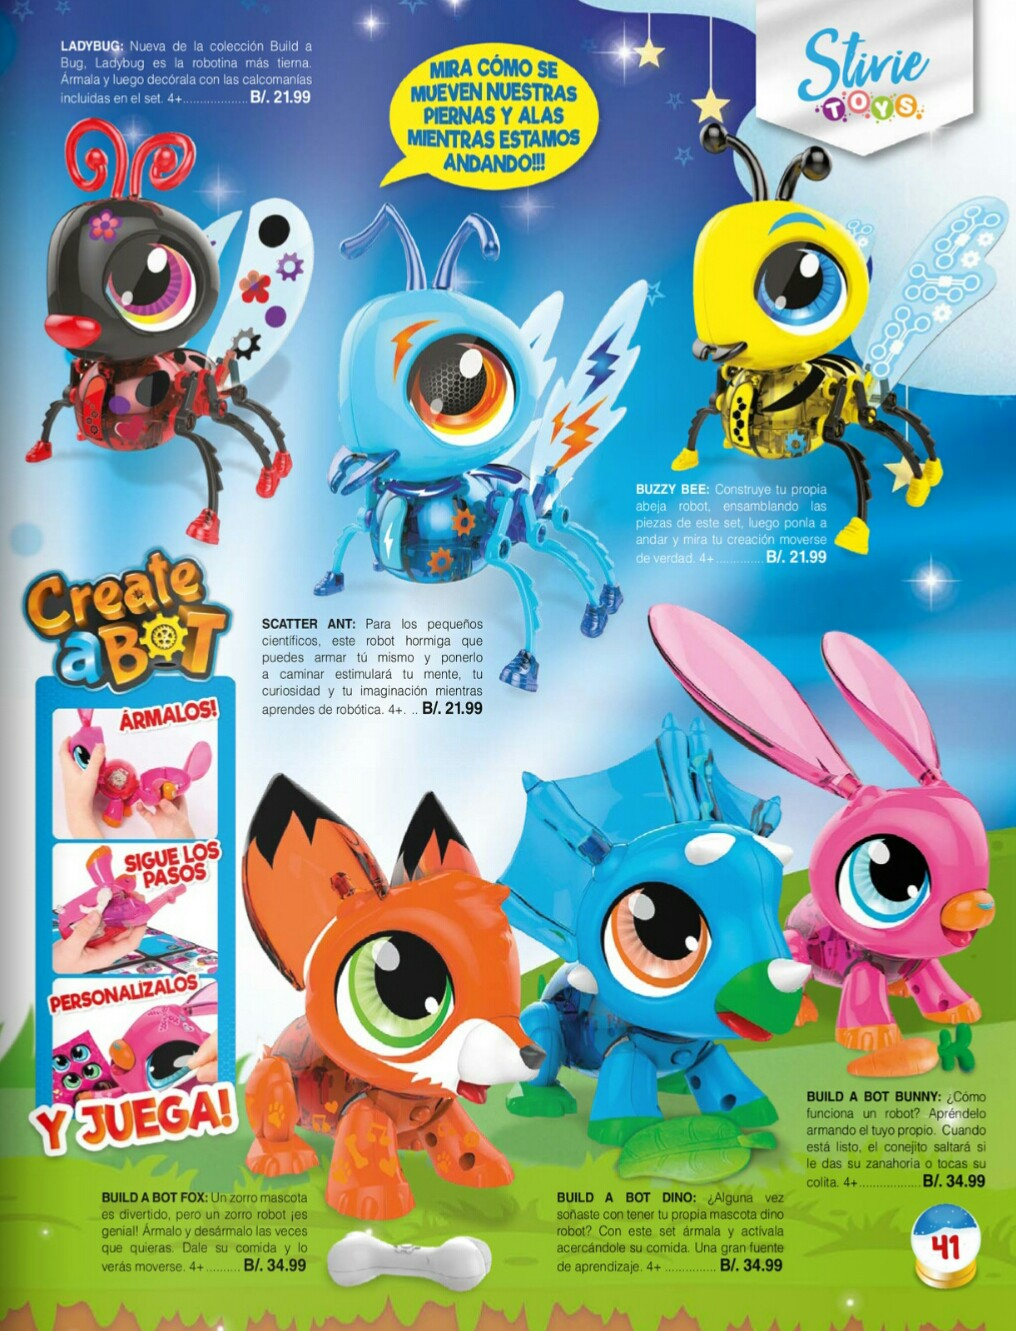 Catalogo juguetes Stivie toys 2018 p41